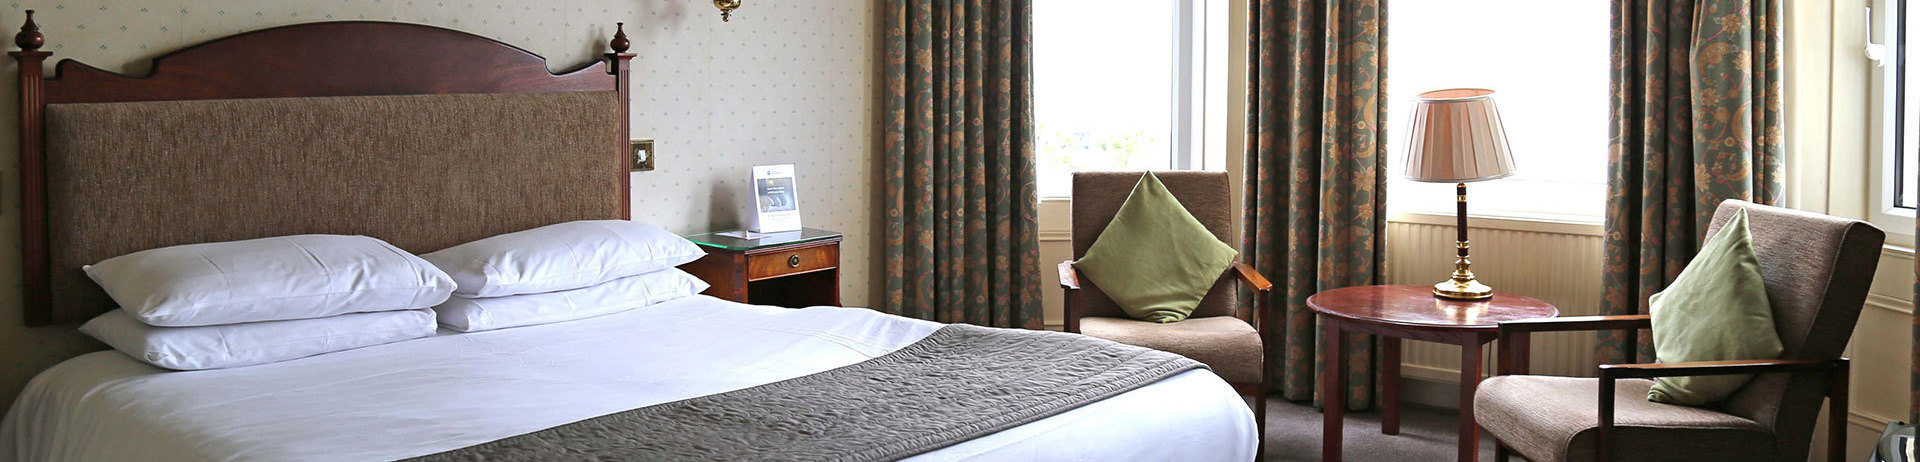 Accommodation in Eastbourne